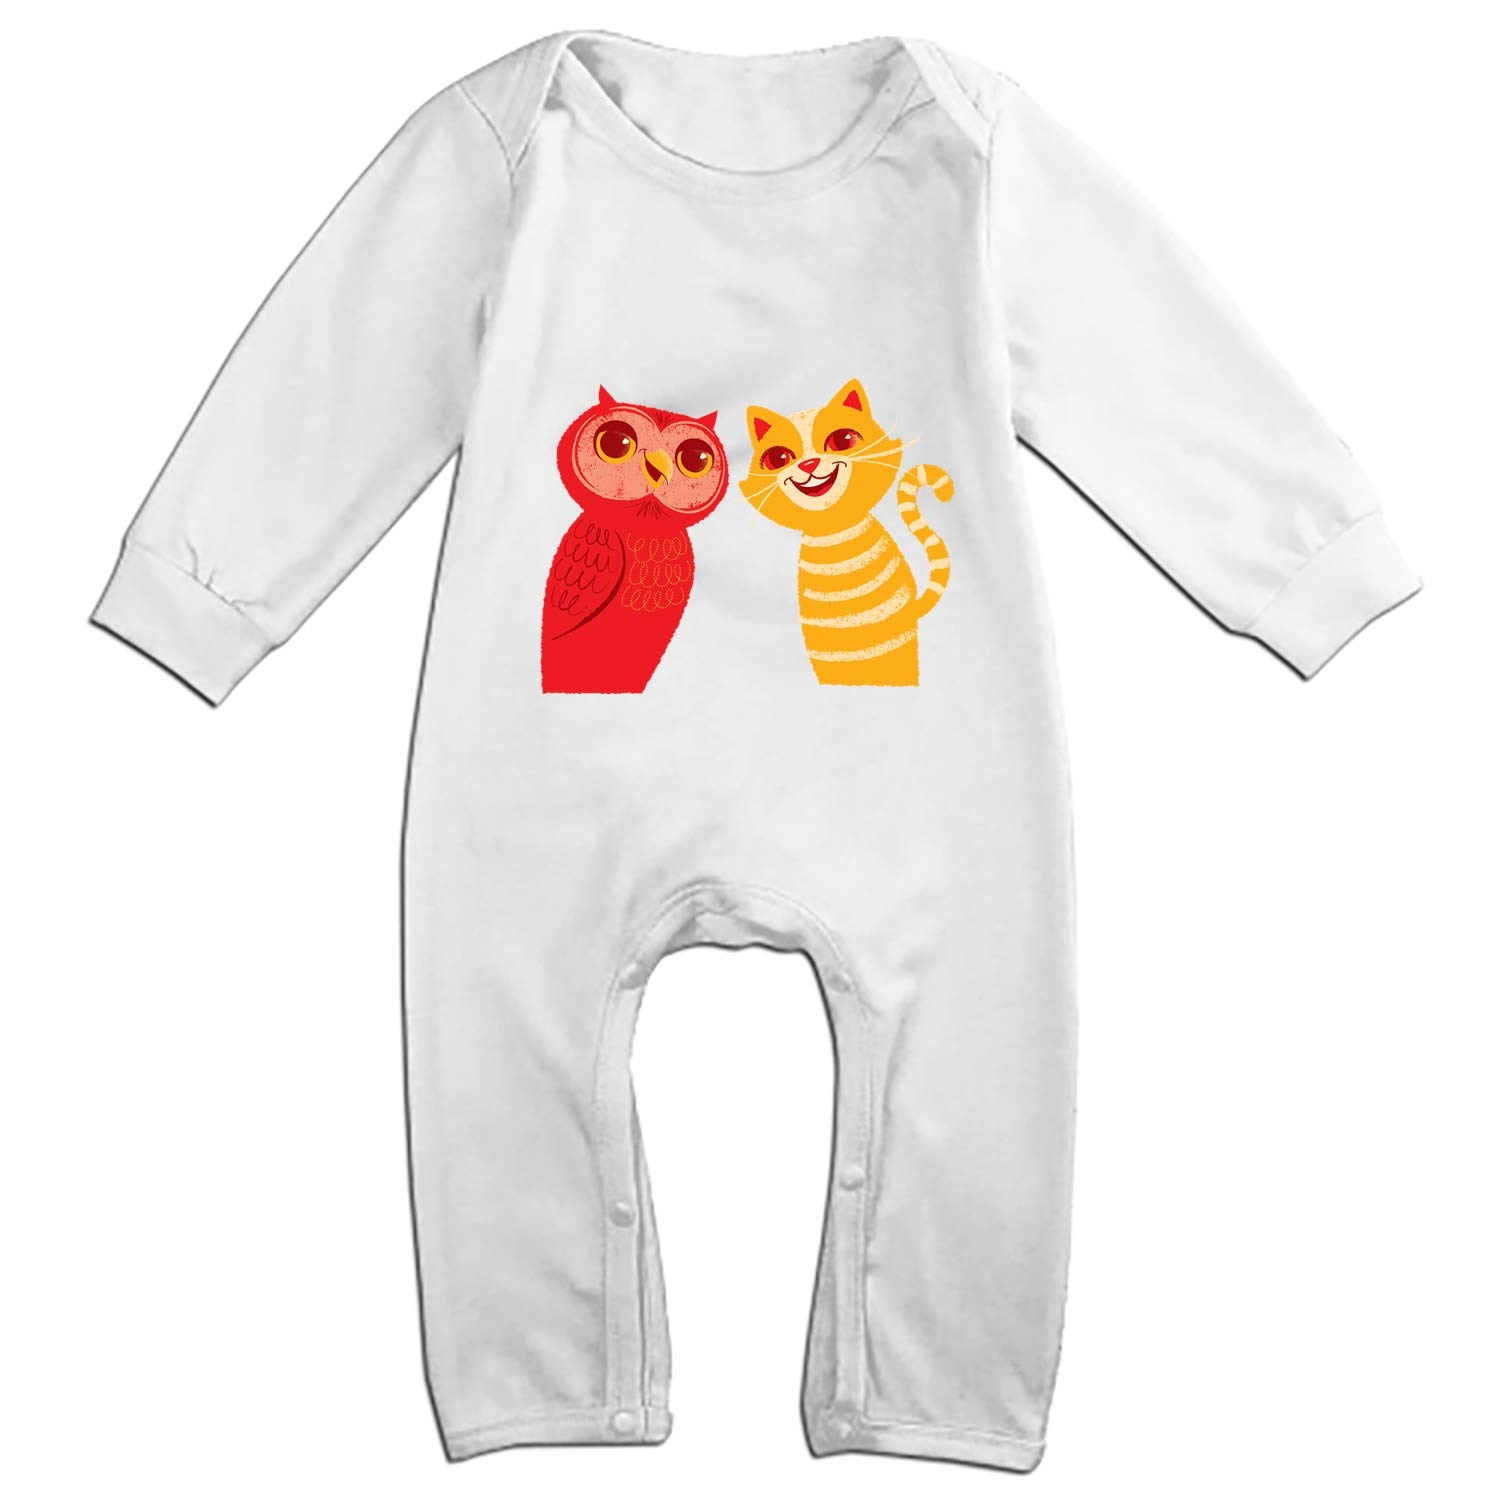 ff4d6171b Amazon.com  The Owl and The Pussyct Baby Onesies Long-Sleeve Infant ...